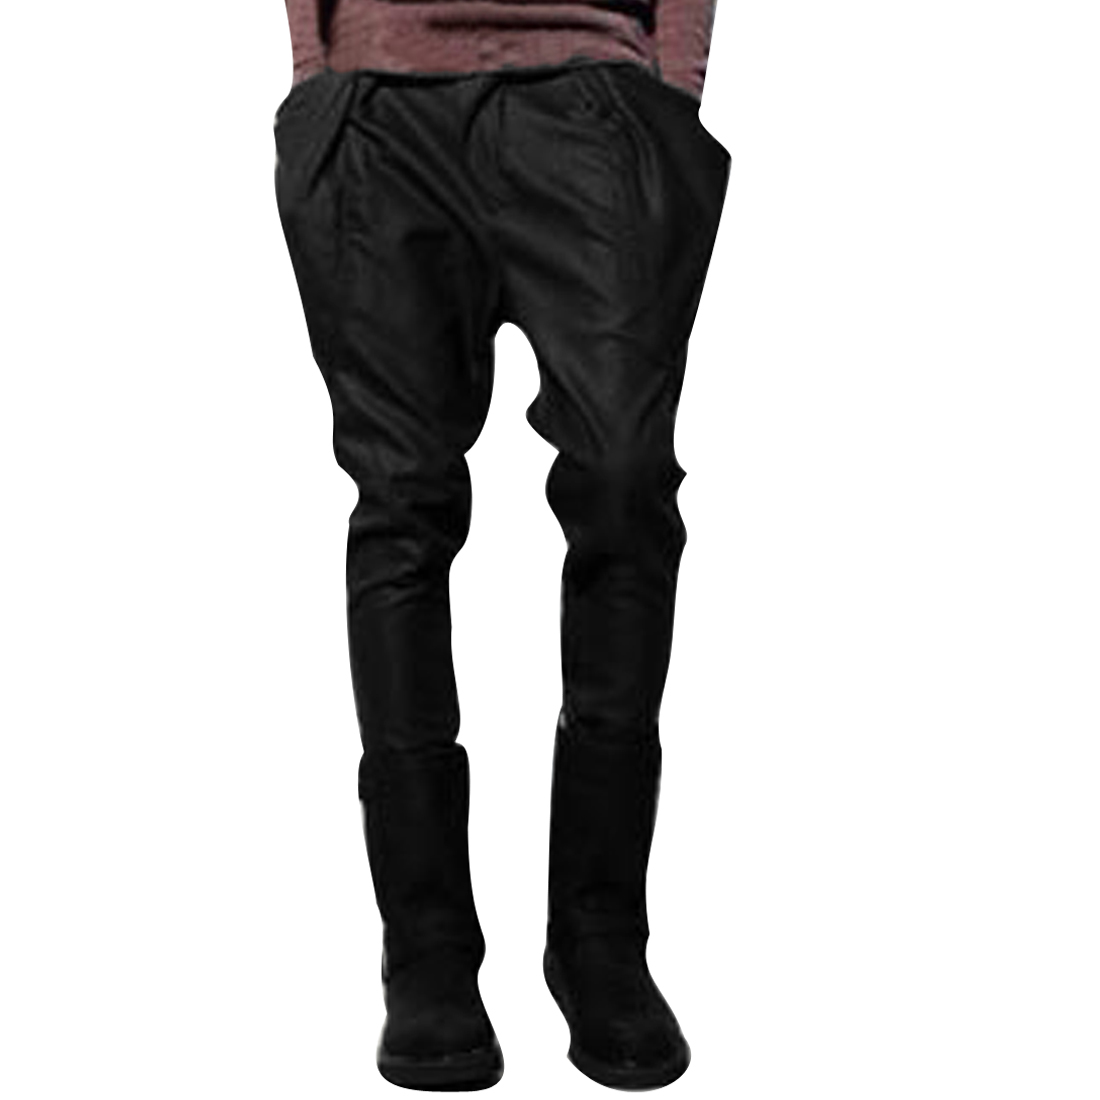 Men Zip Up Waistband Loop Side Pockets Casual Pants Black W33